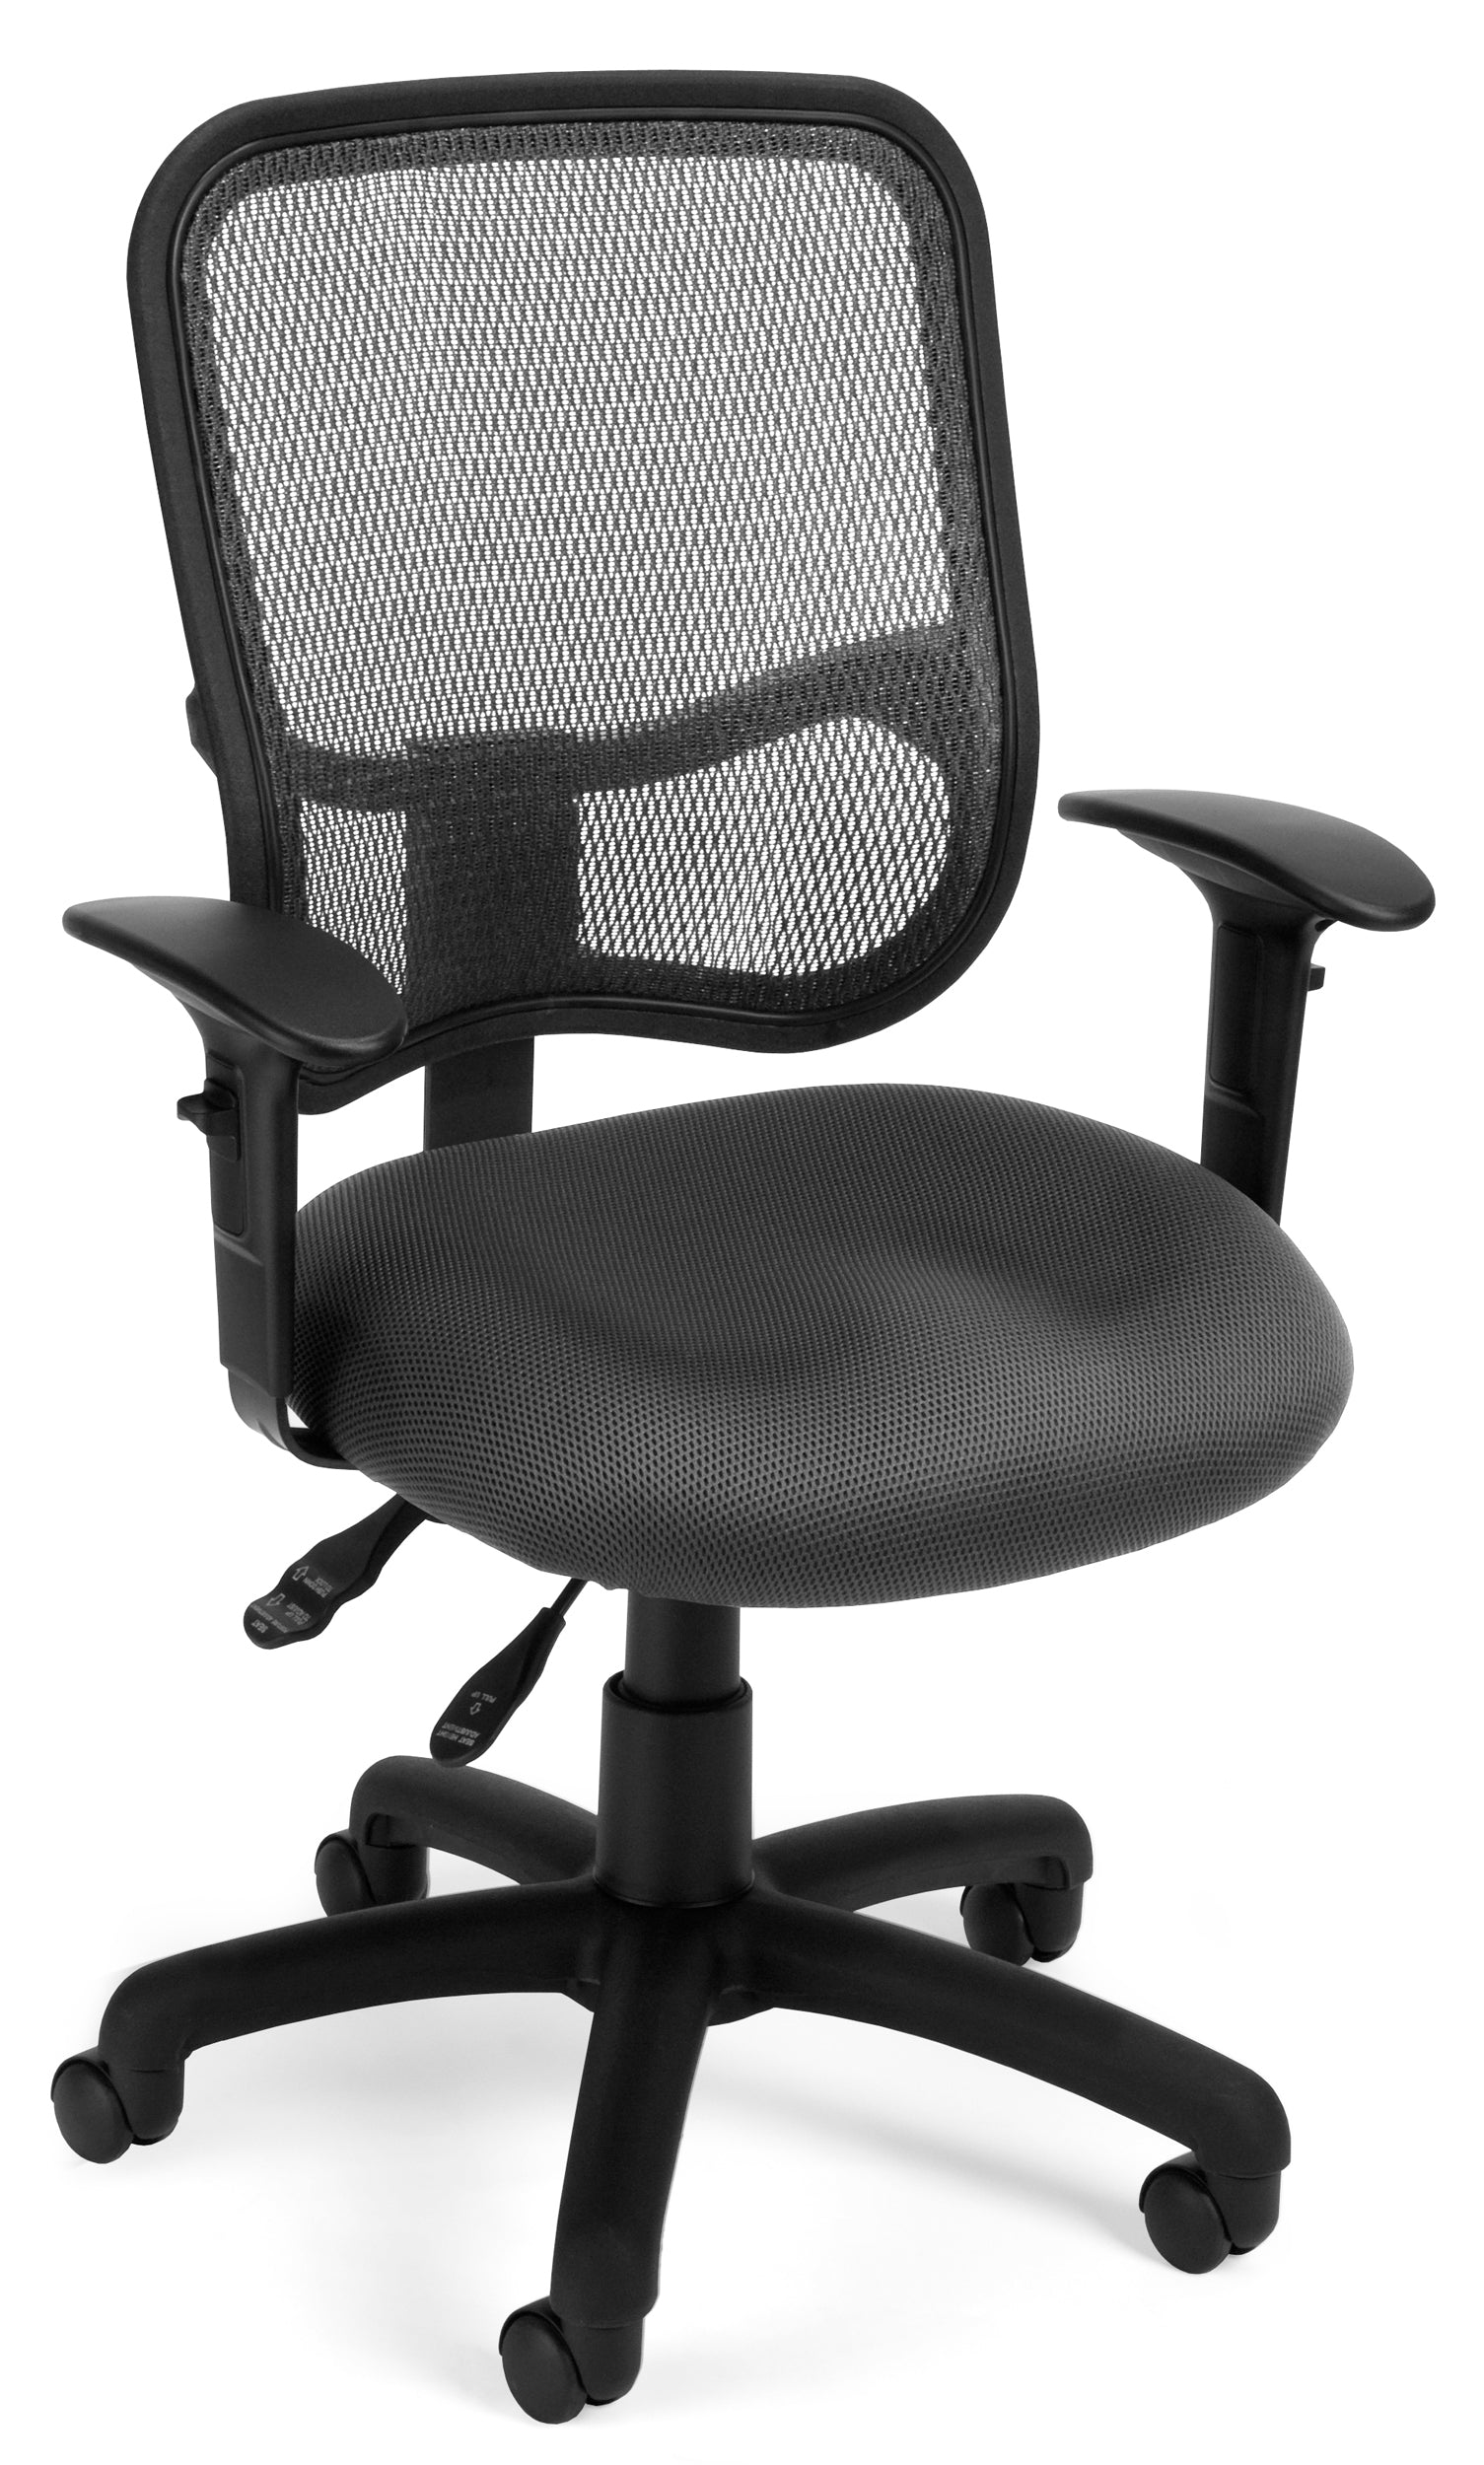 Model 130-AA3 Comfort Series Ergonomic Mesh Swivel Task Arms Chair